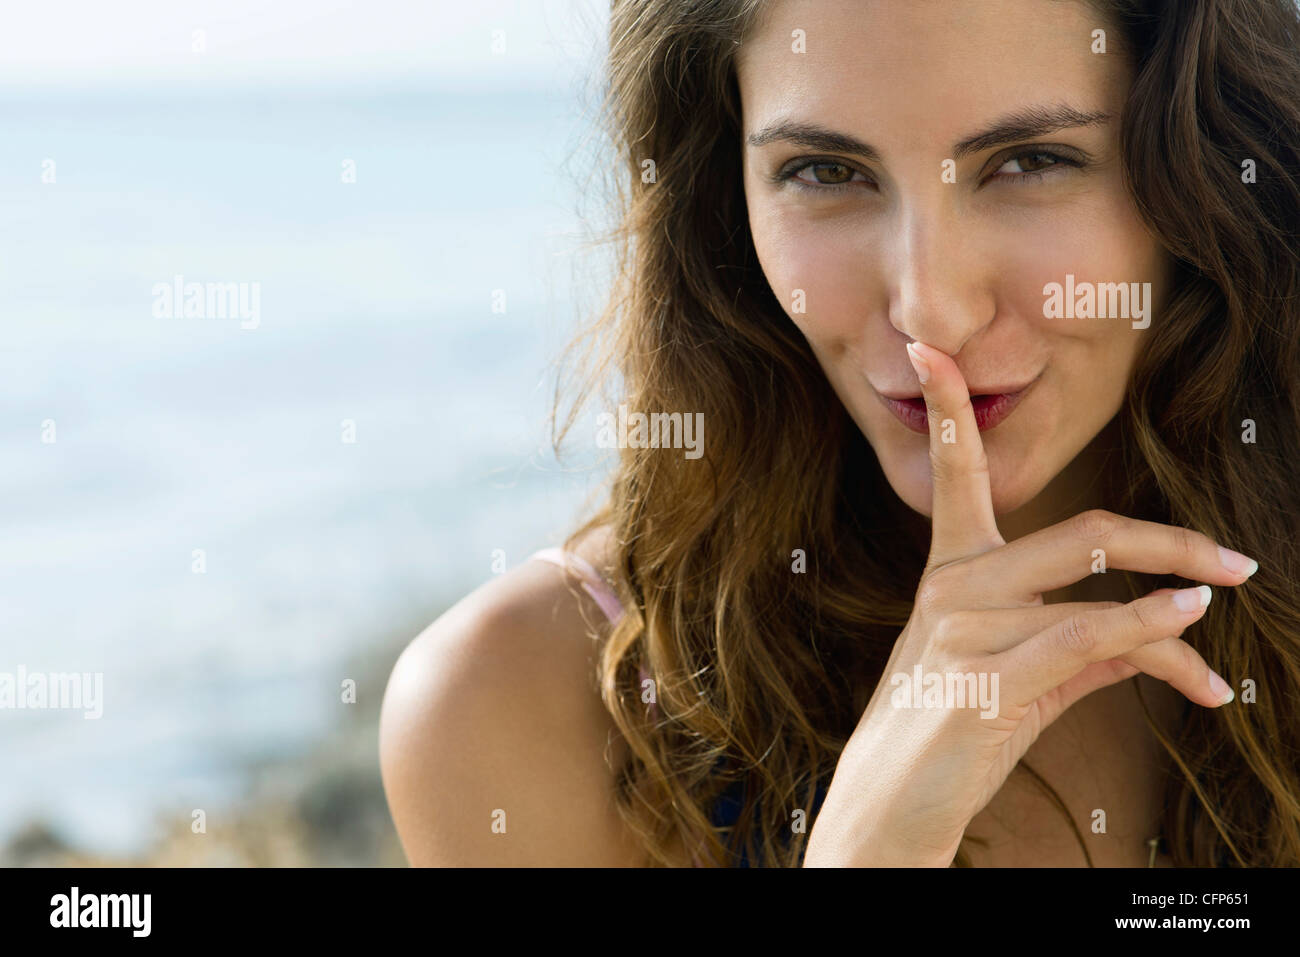 Young woman with finger on lips, portrait - Stock Image